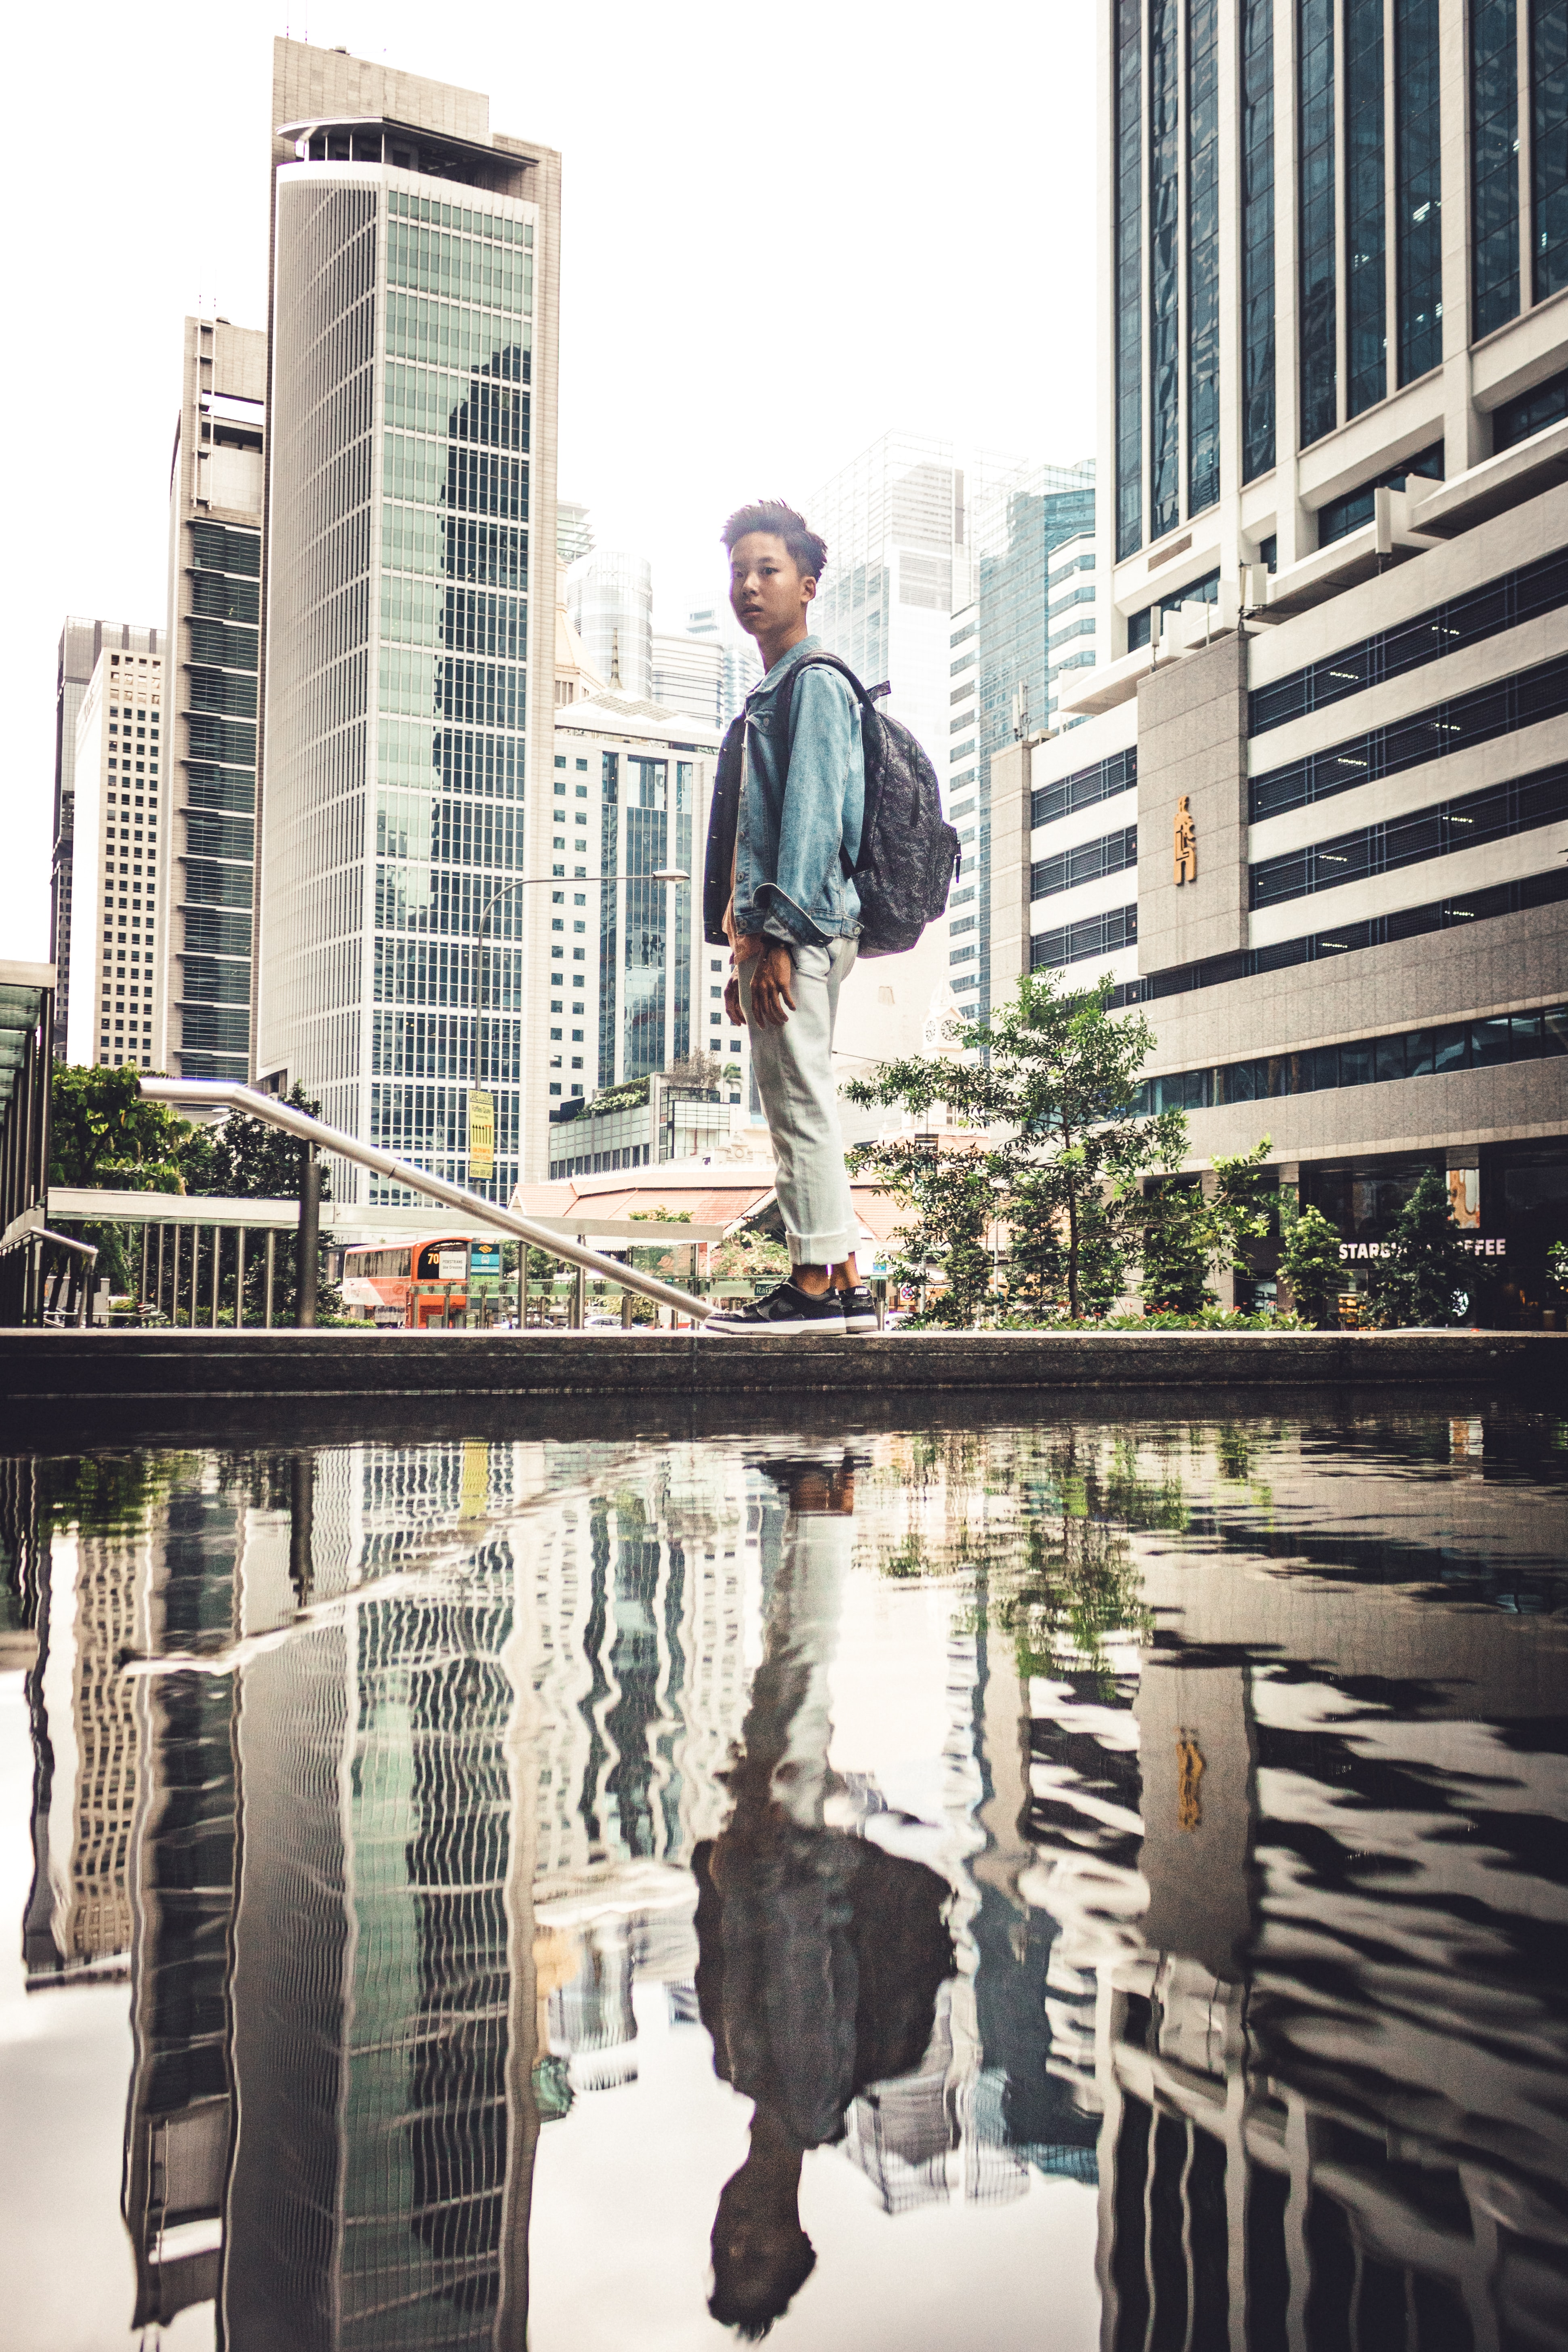 man standing on fountain edge near city buildings during daytime